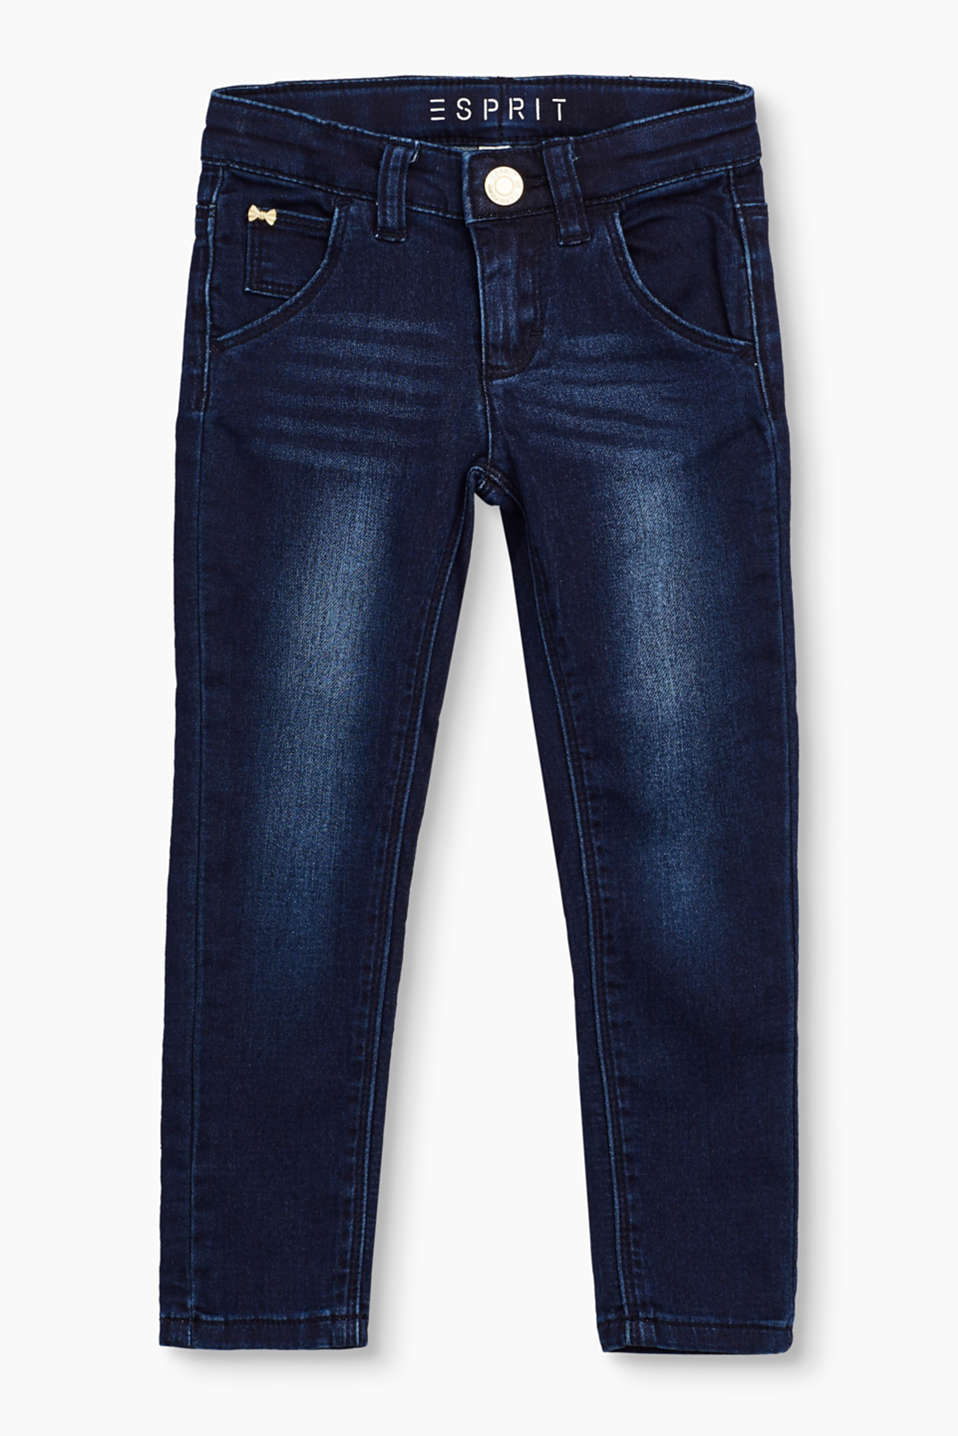 These basic dark wash jeans are perfect for slim kids and come in a stretchy design